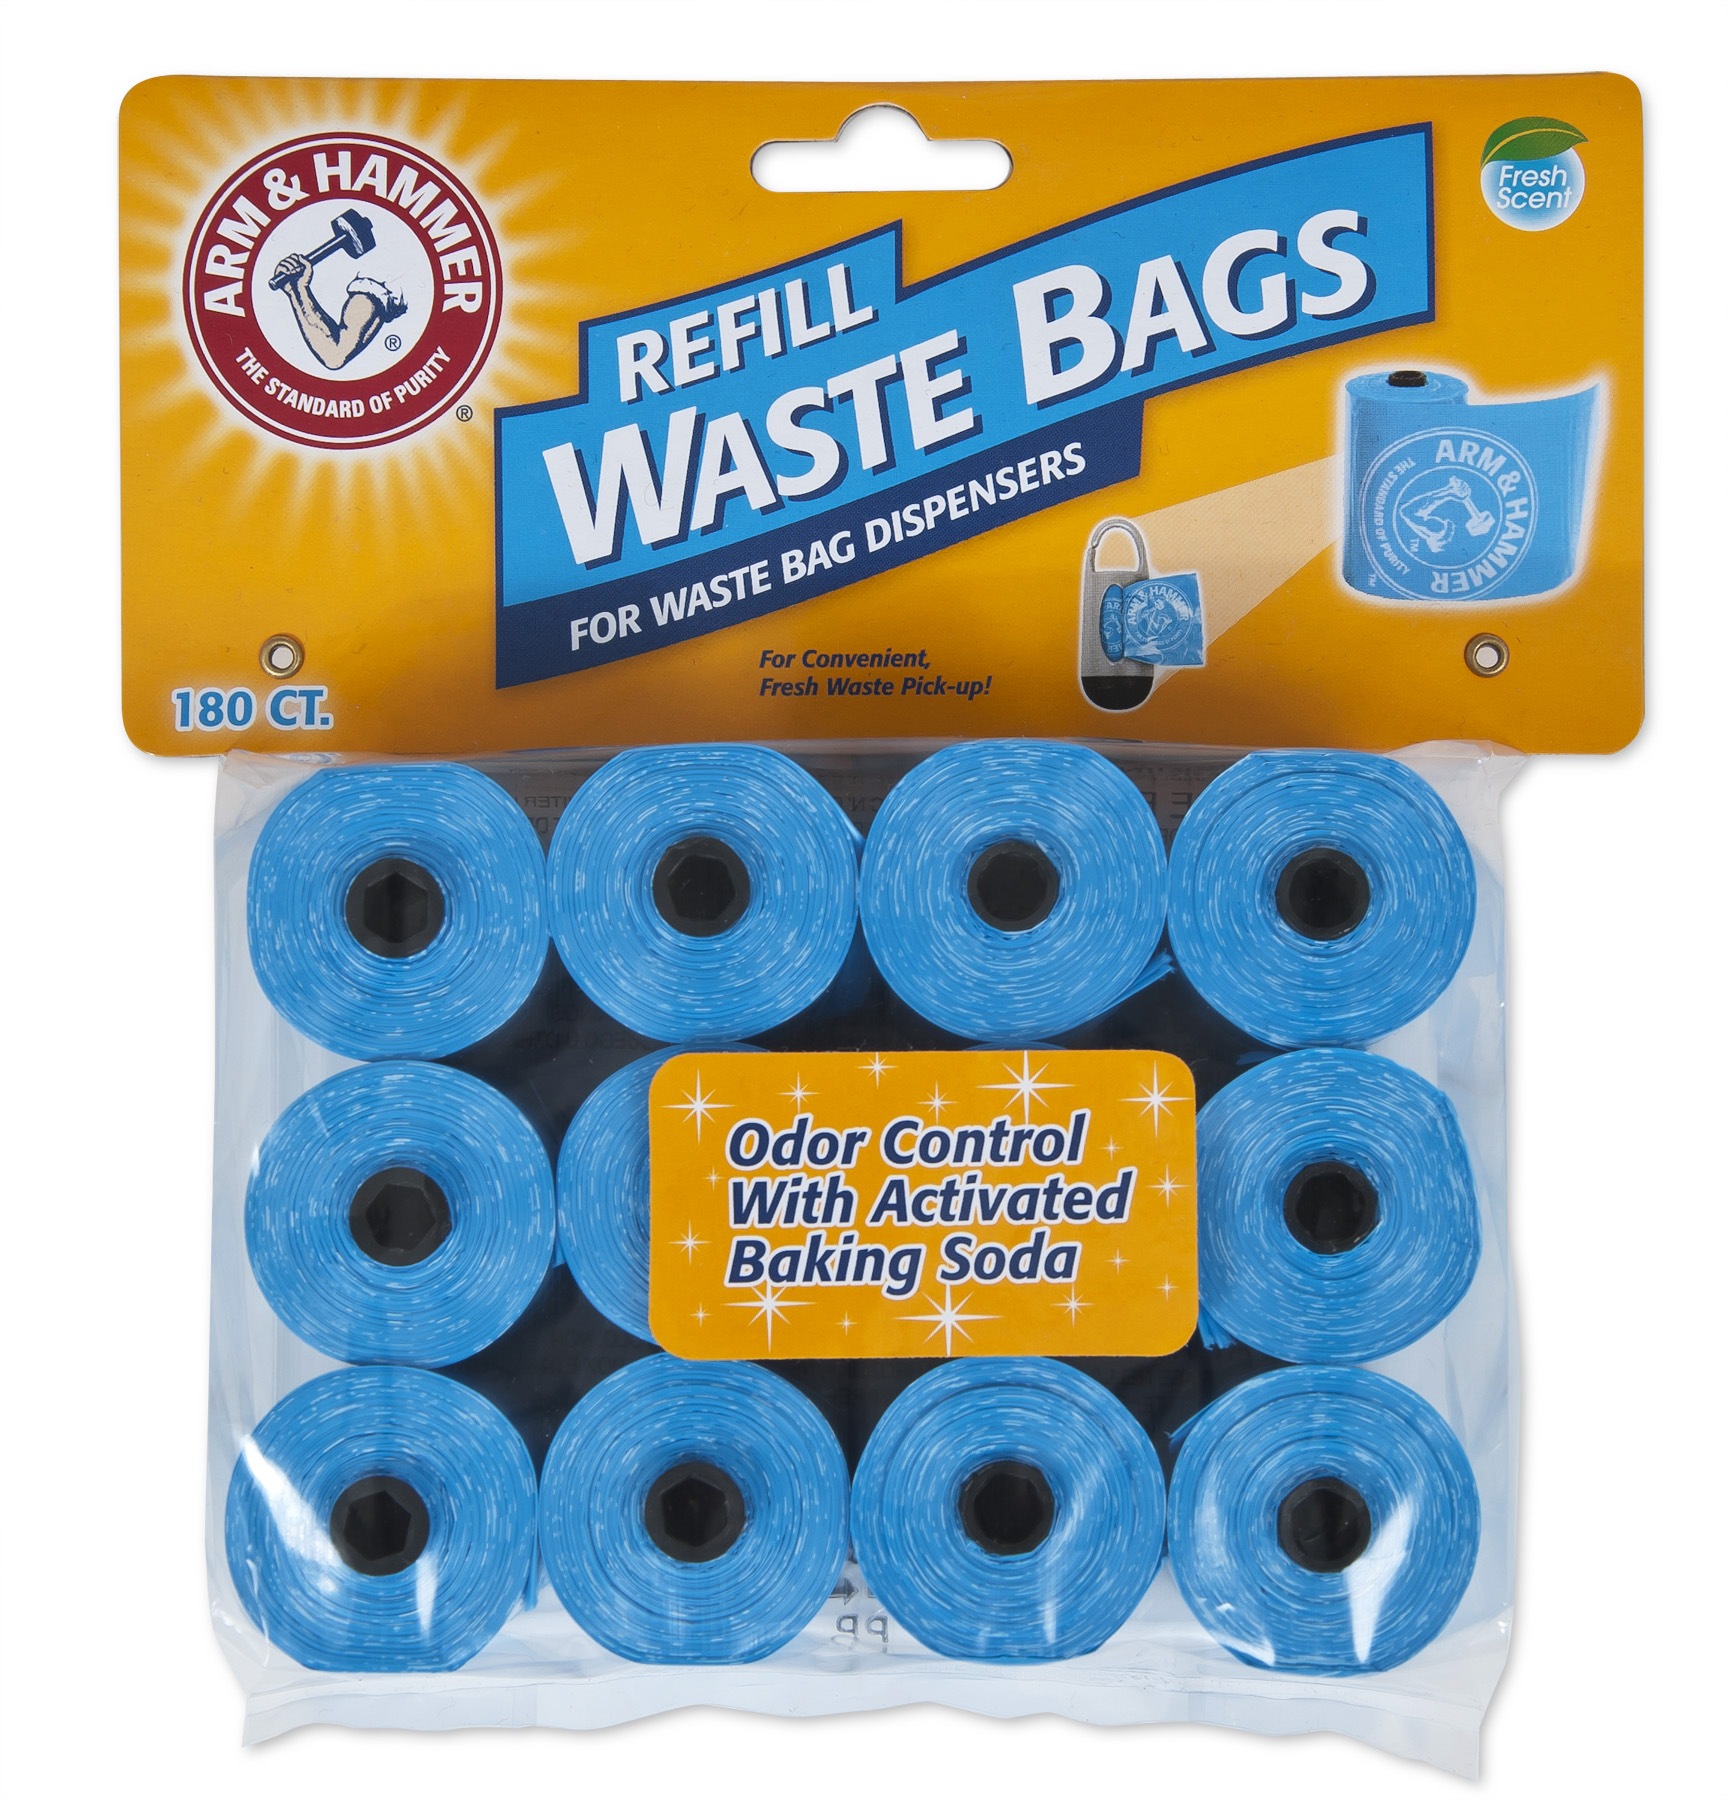 Arm & Hammer Disposable Waste Bag Refills, 180 Ct